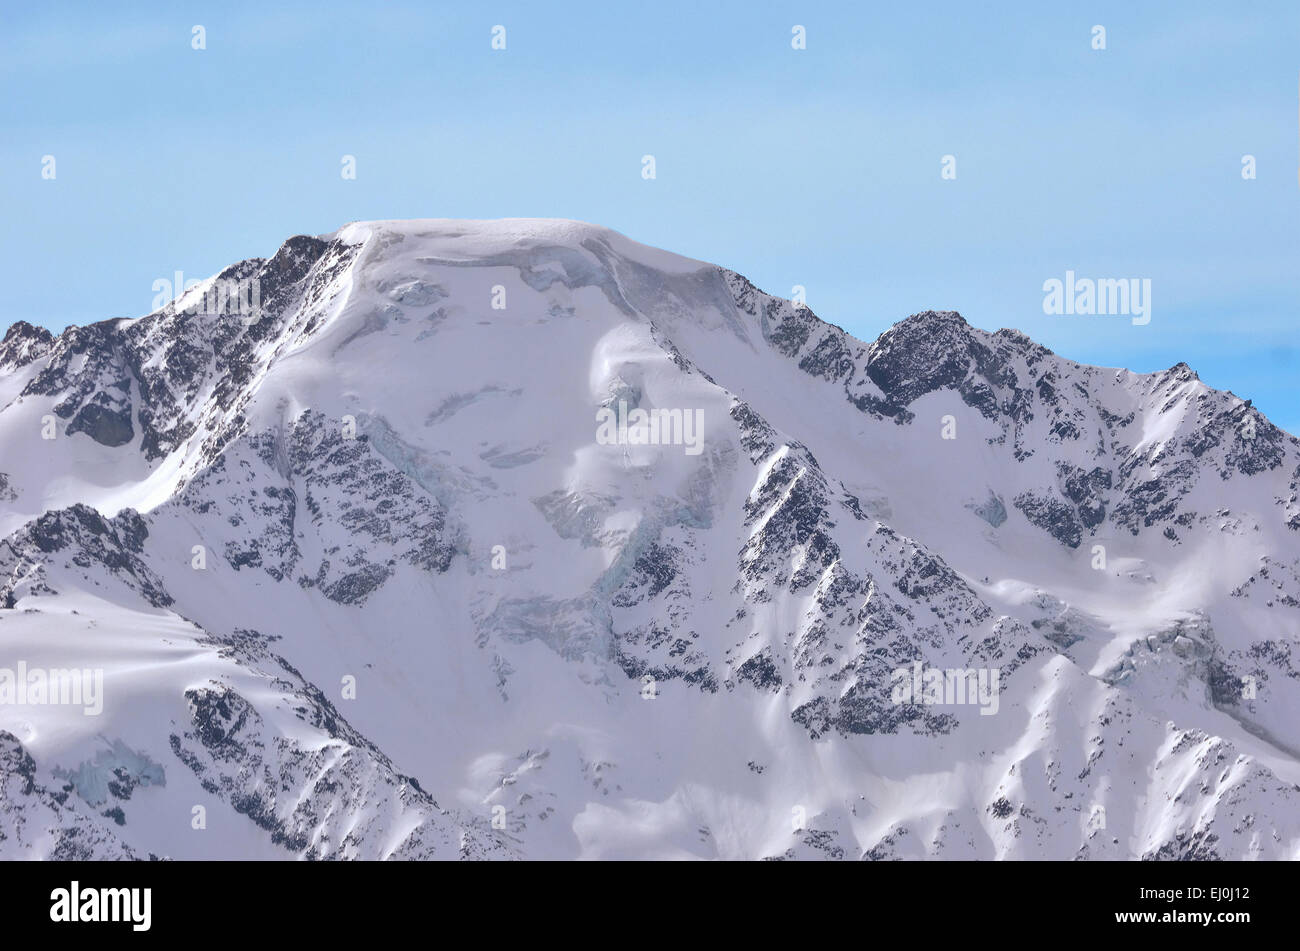 One of the highest alpine peaks, the north east face of the Grand Combin on the Swiss - Italian border, near to - Stock Image